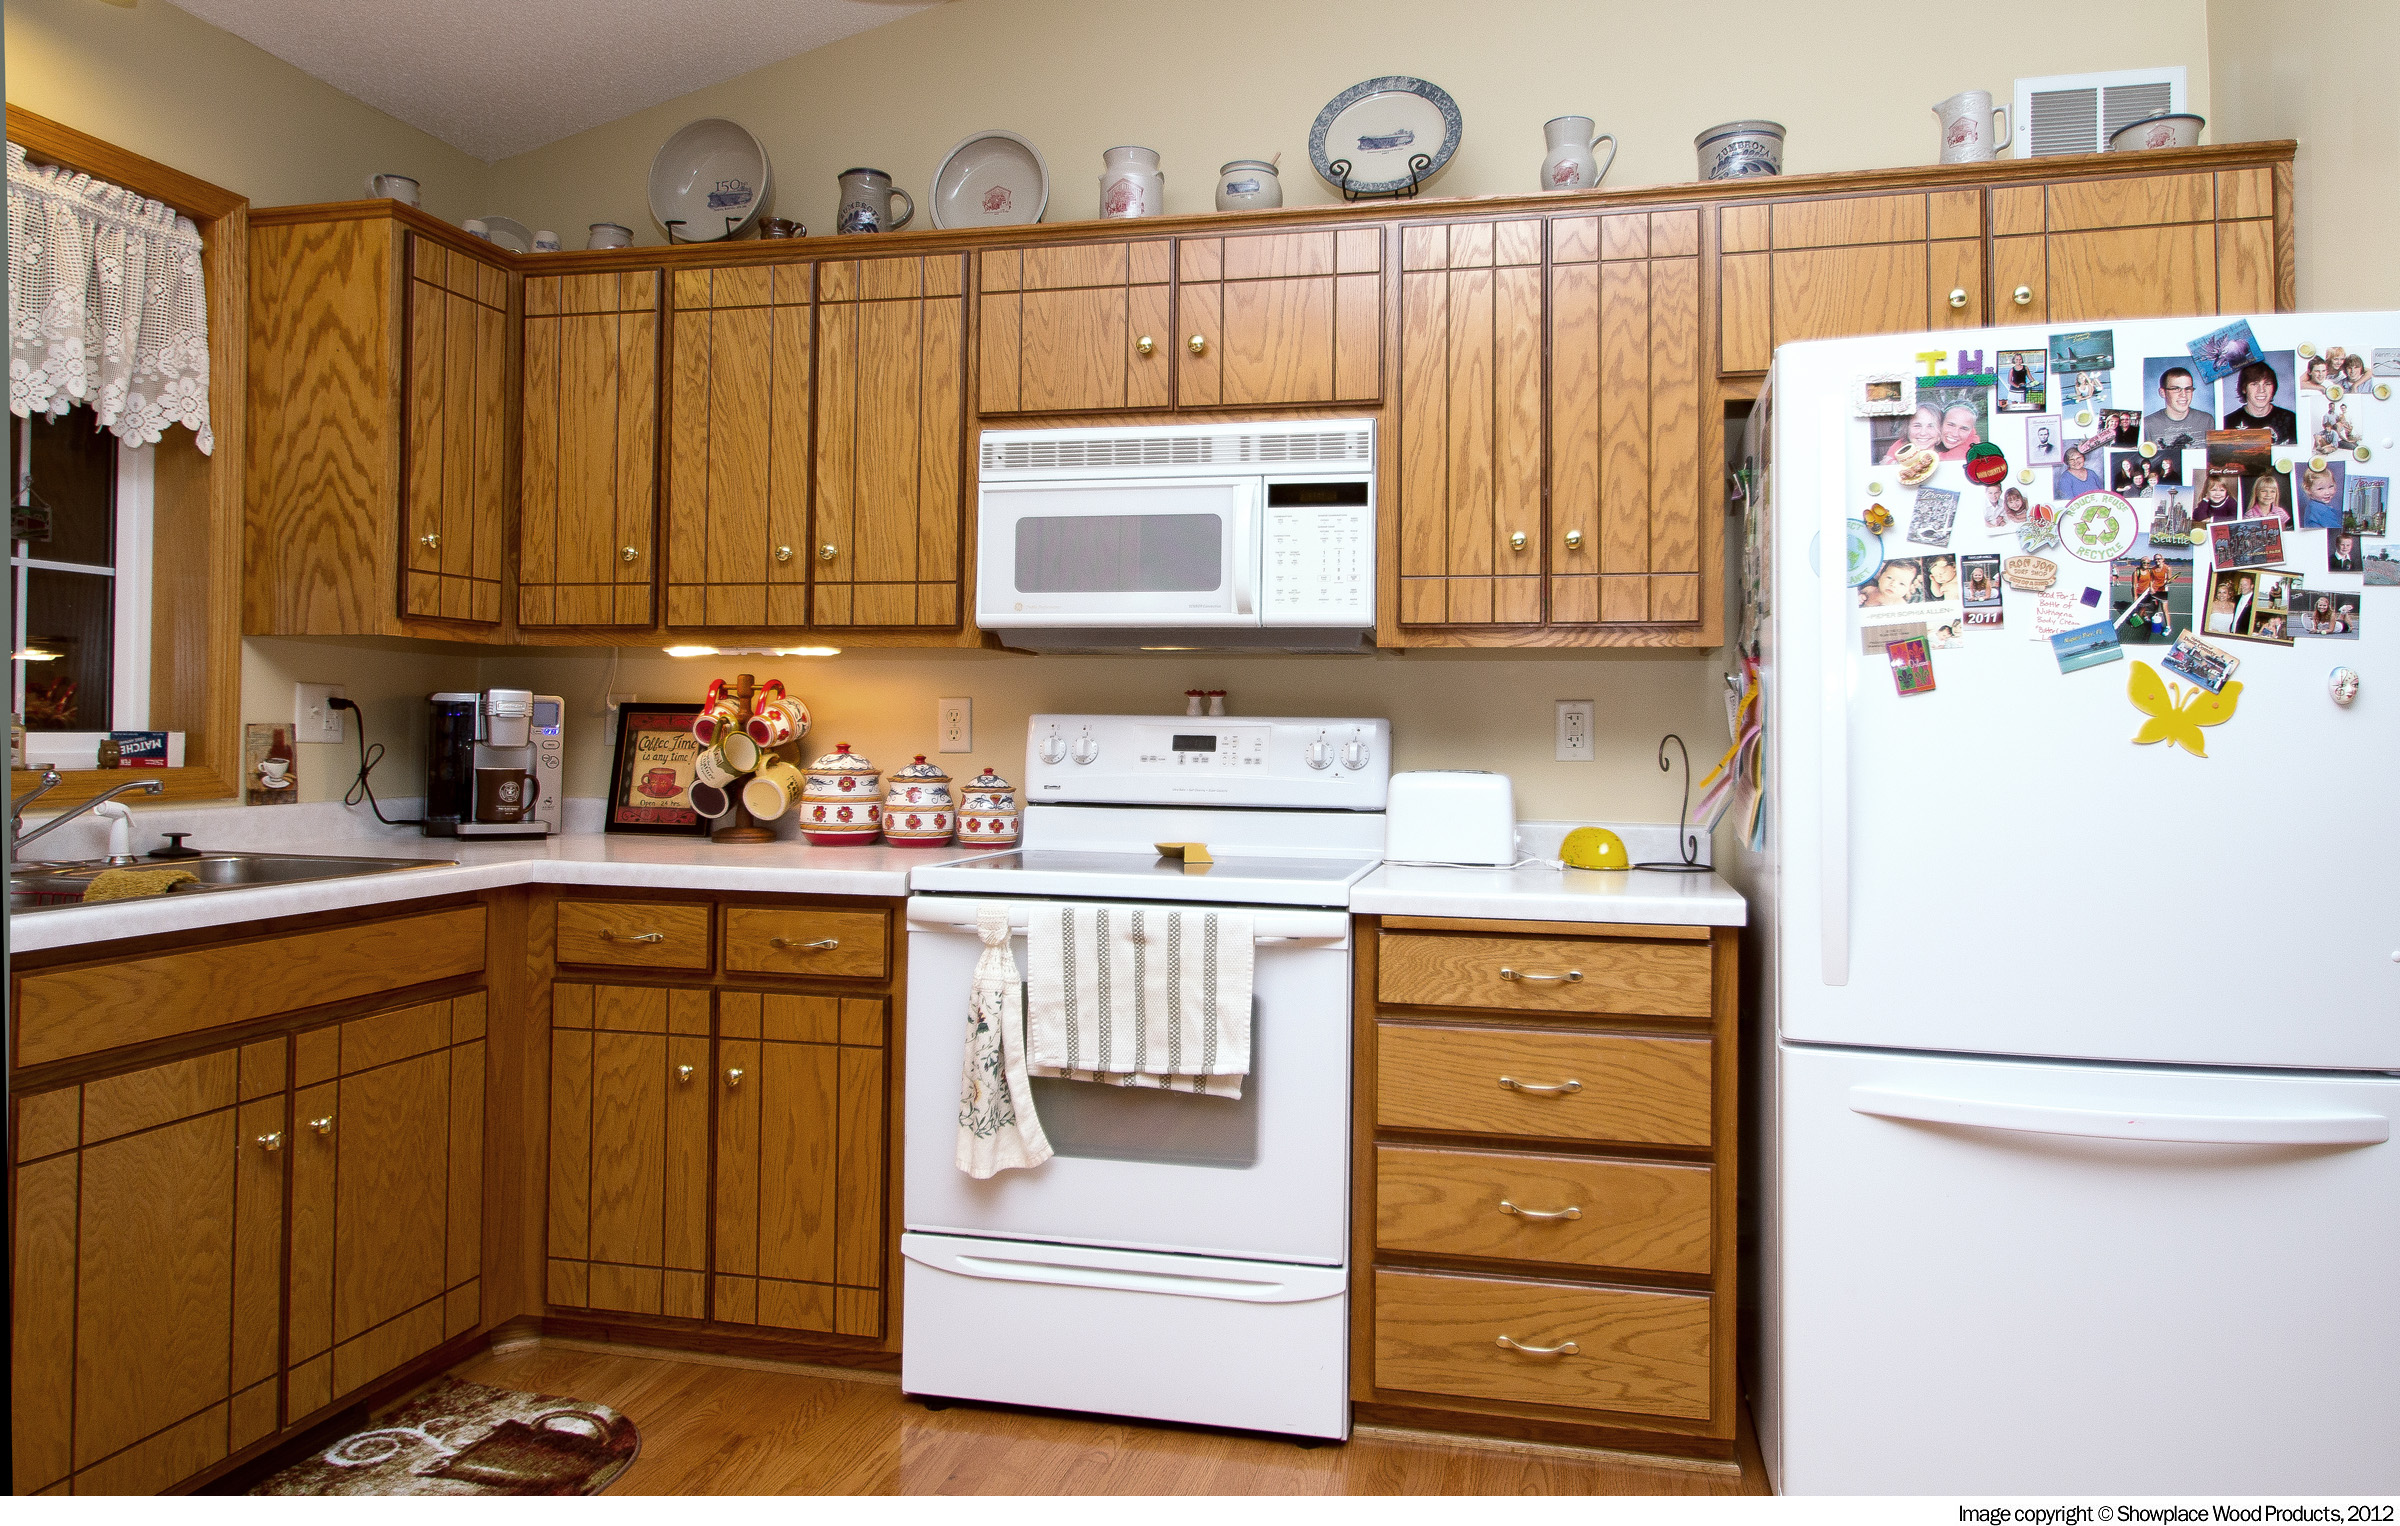 Refinishing your kitchen or bathroom cabinets cabinet refinishing - Is Cabinet Refacing A Good Option For You Dreammaker